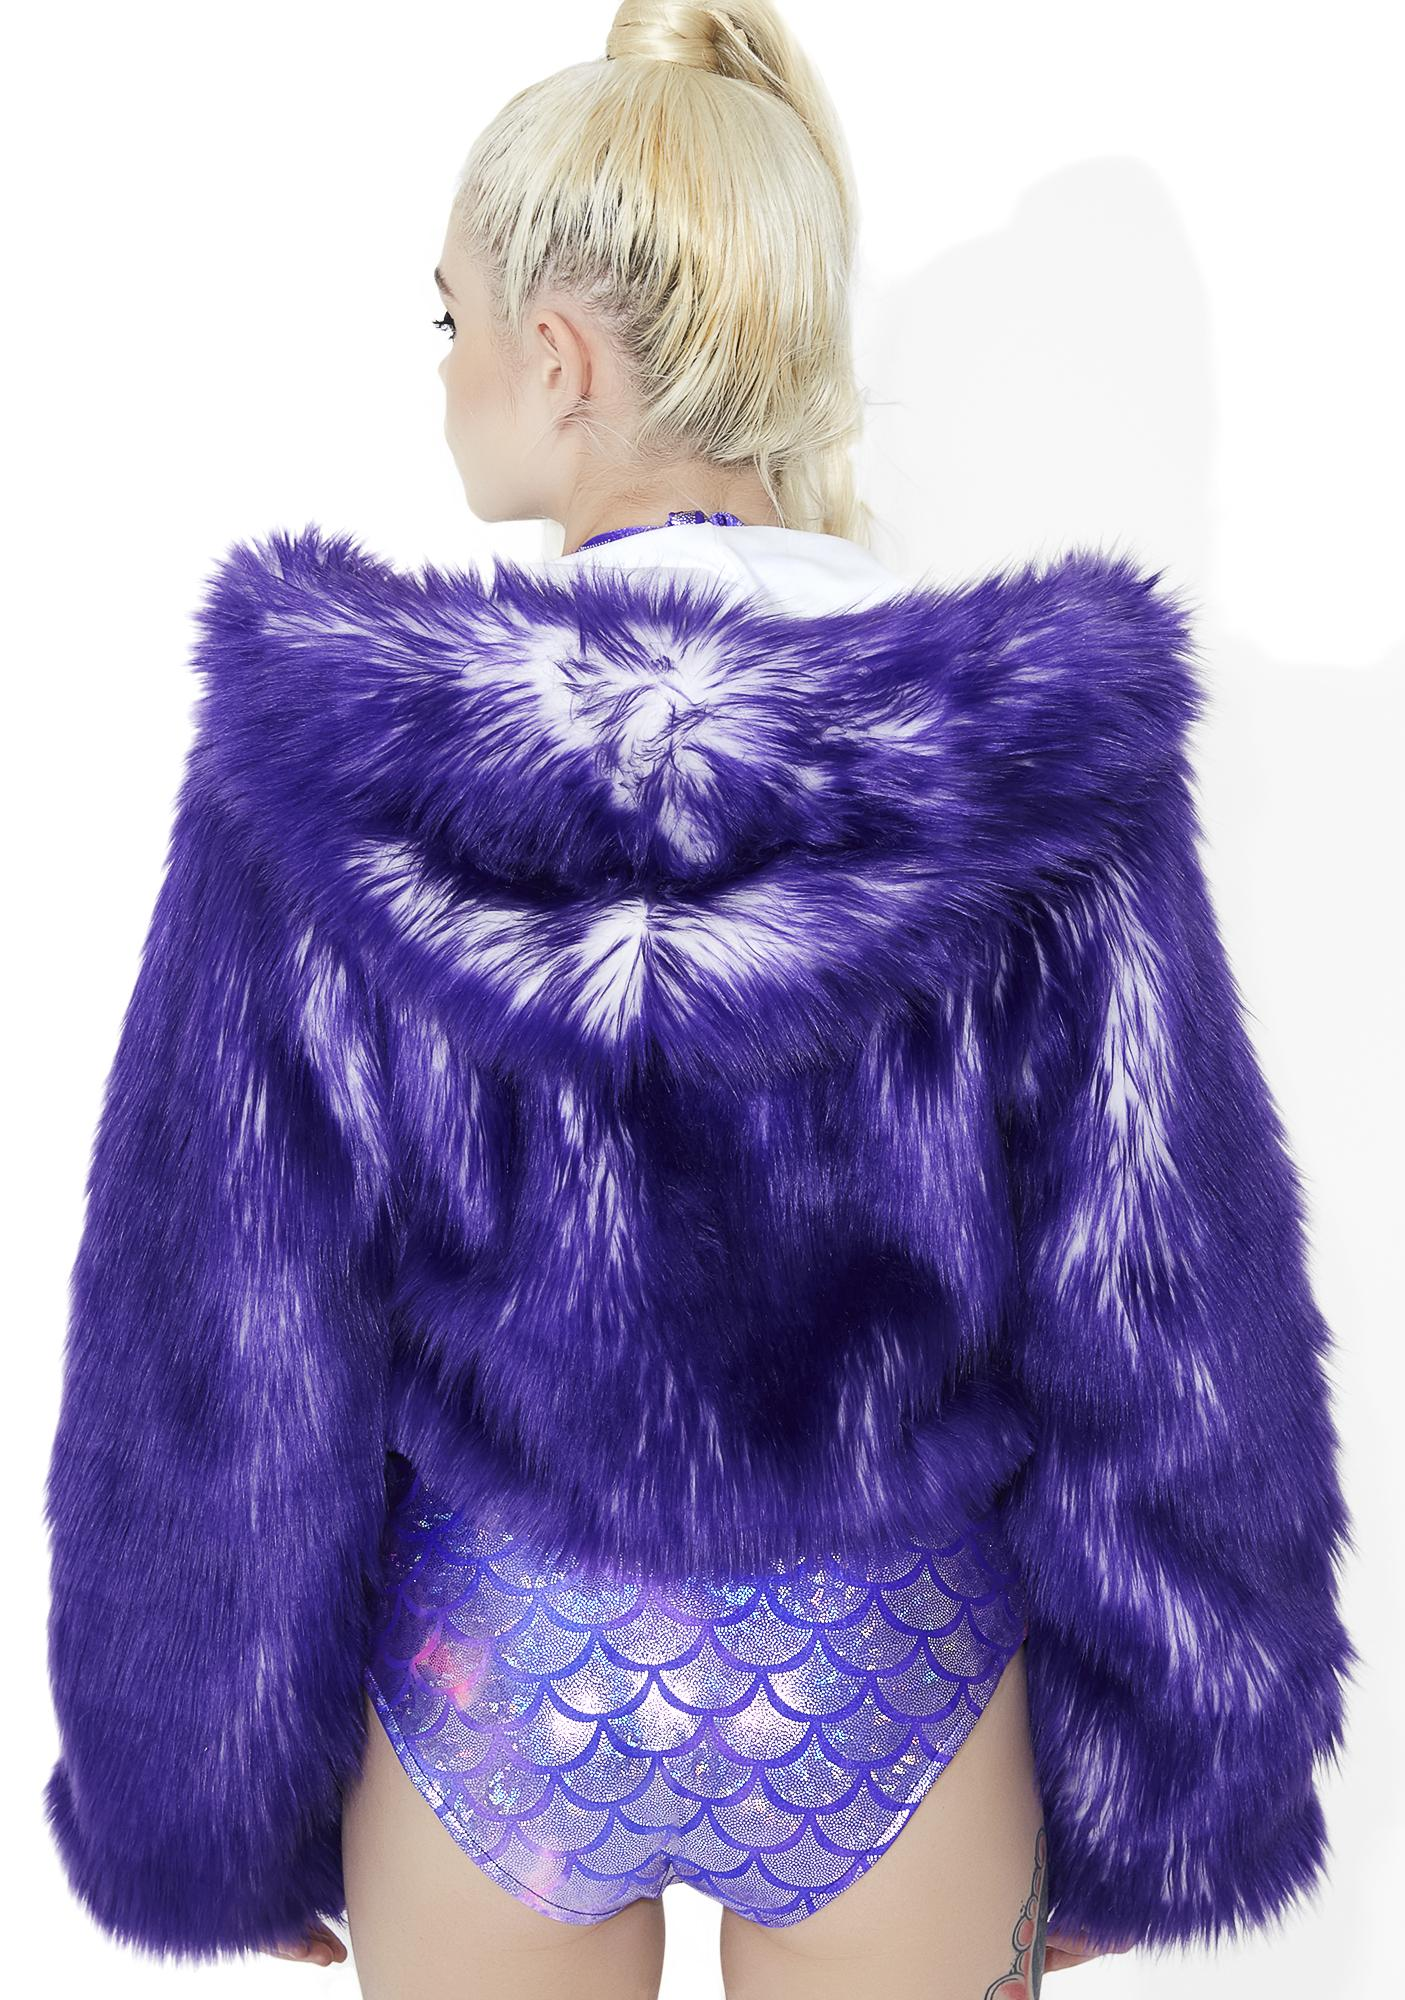 J Valentine Light-Up Faux Fur Cropped Jacket